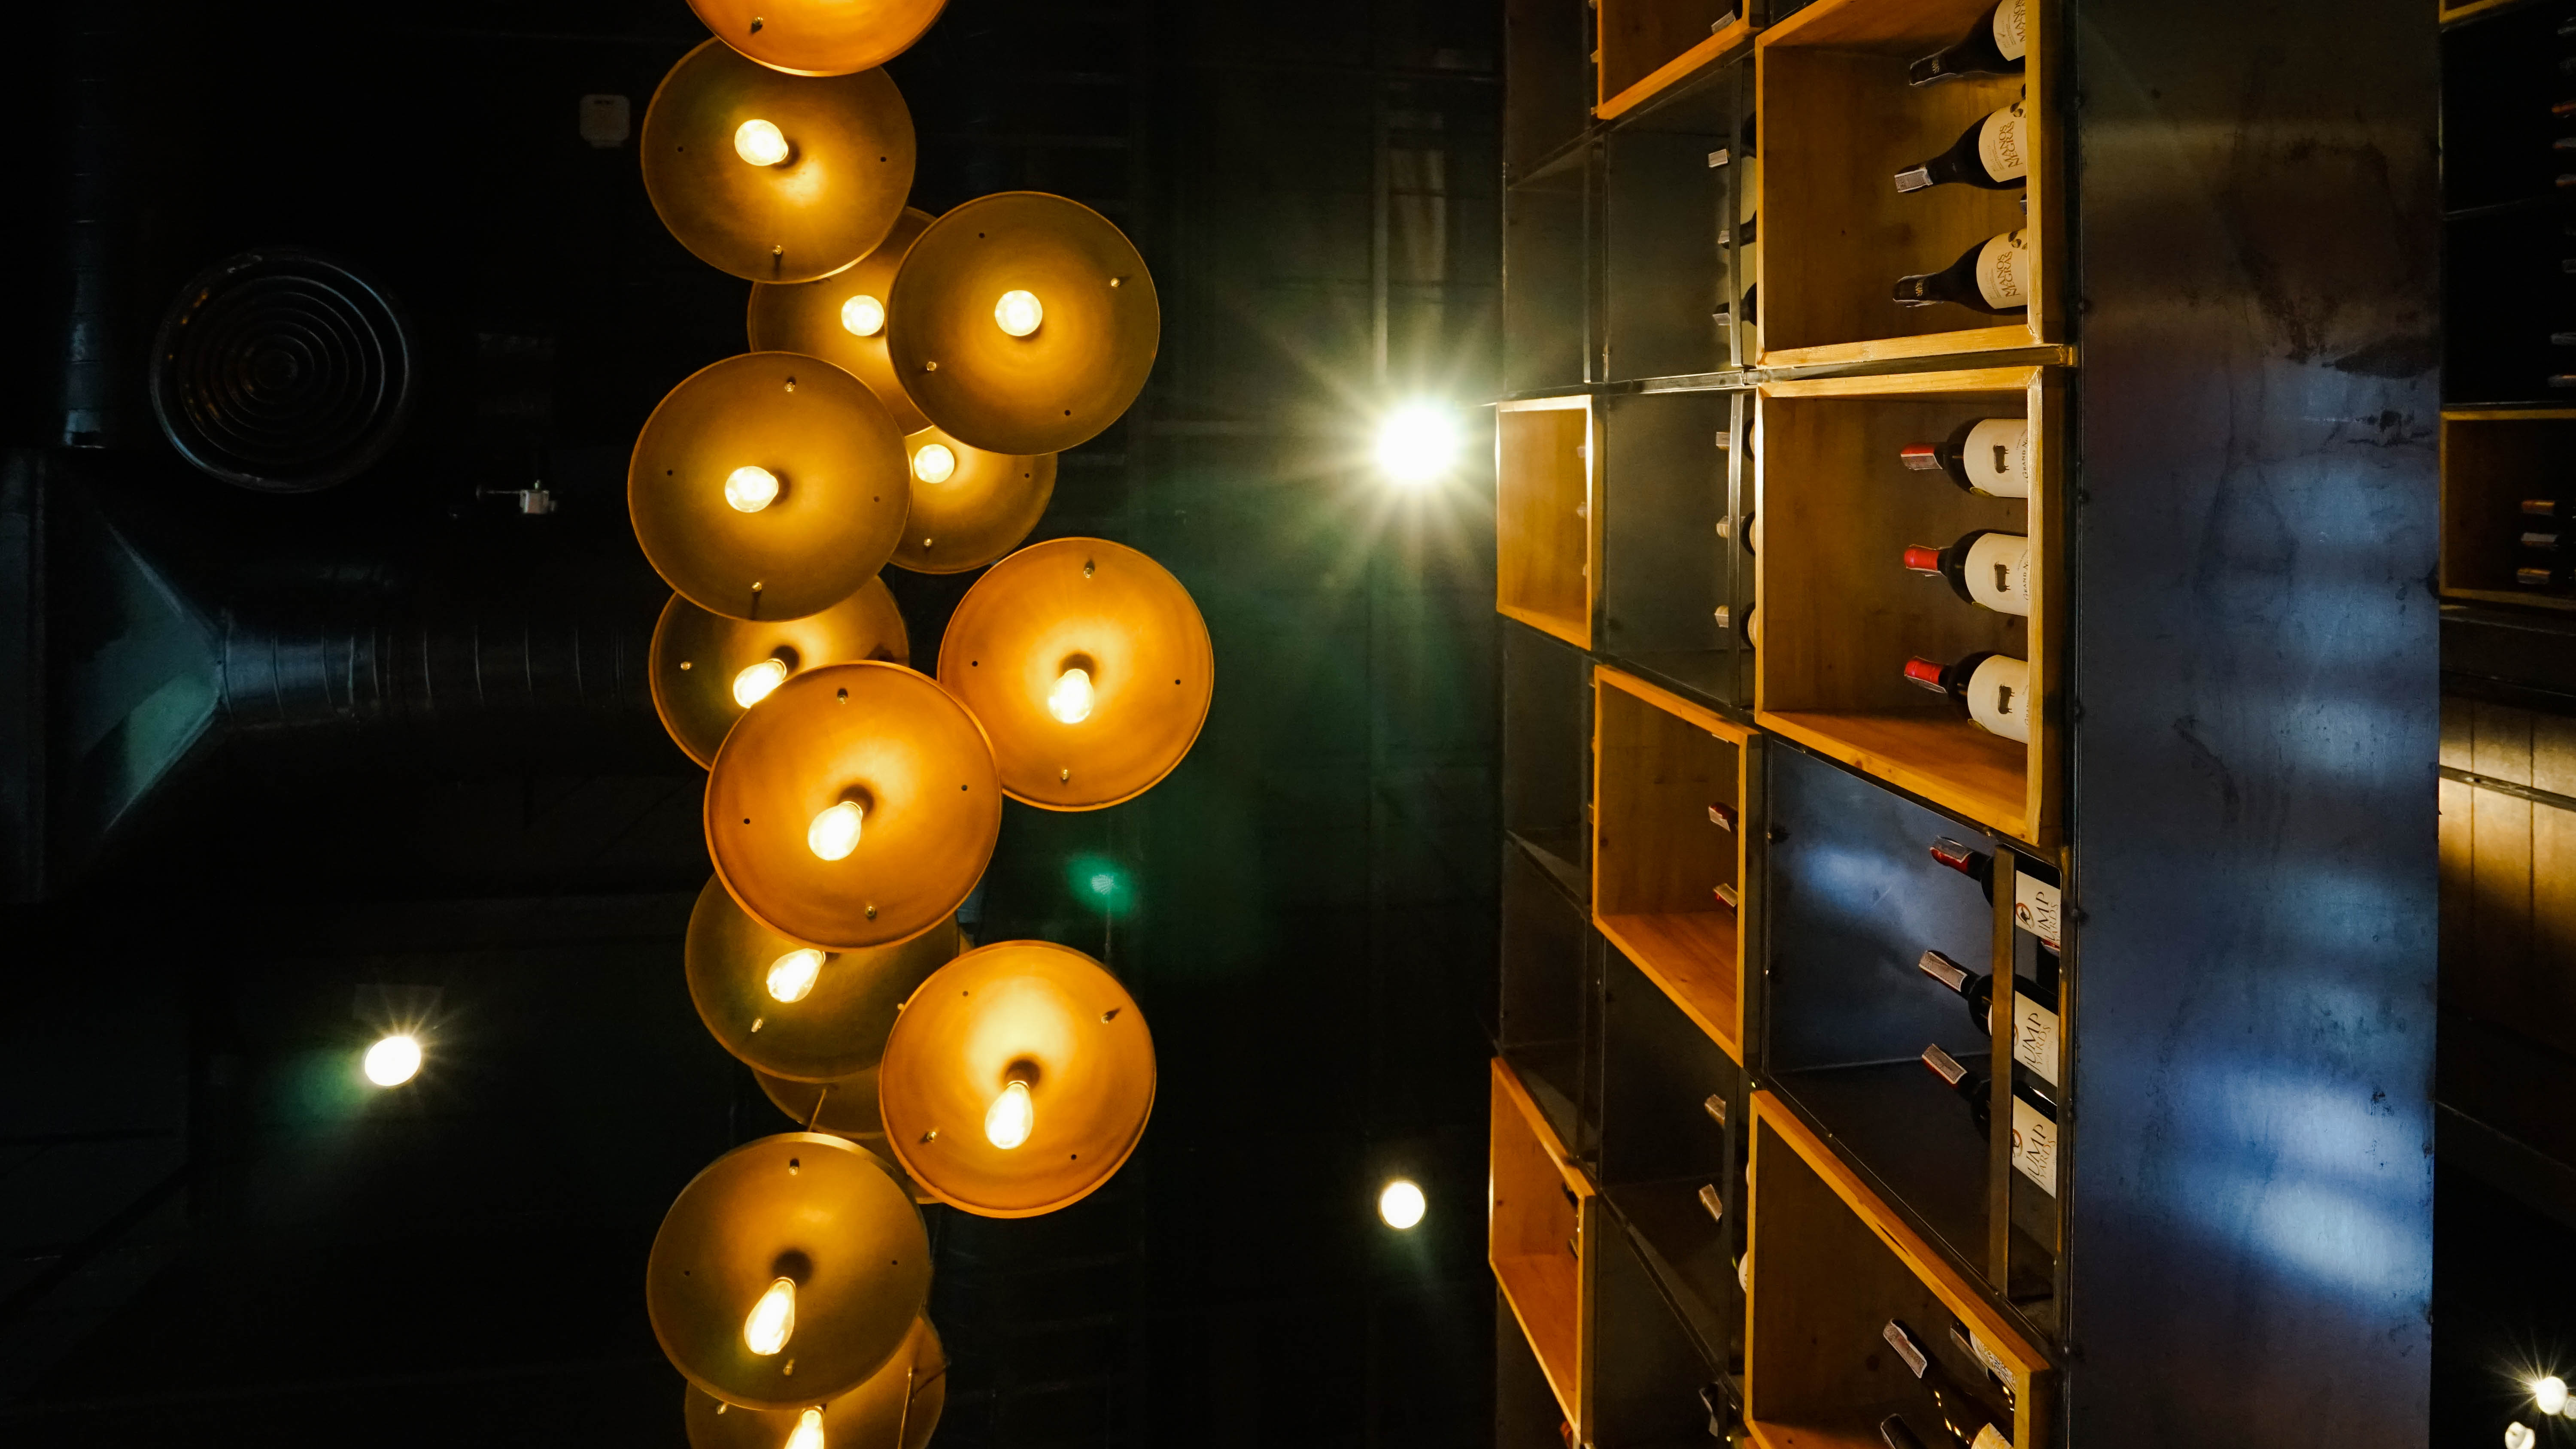 10Design wineconnection wine bar interior design hospitality 09